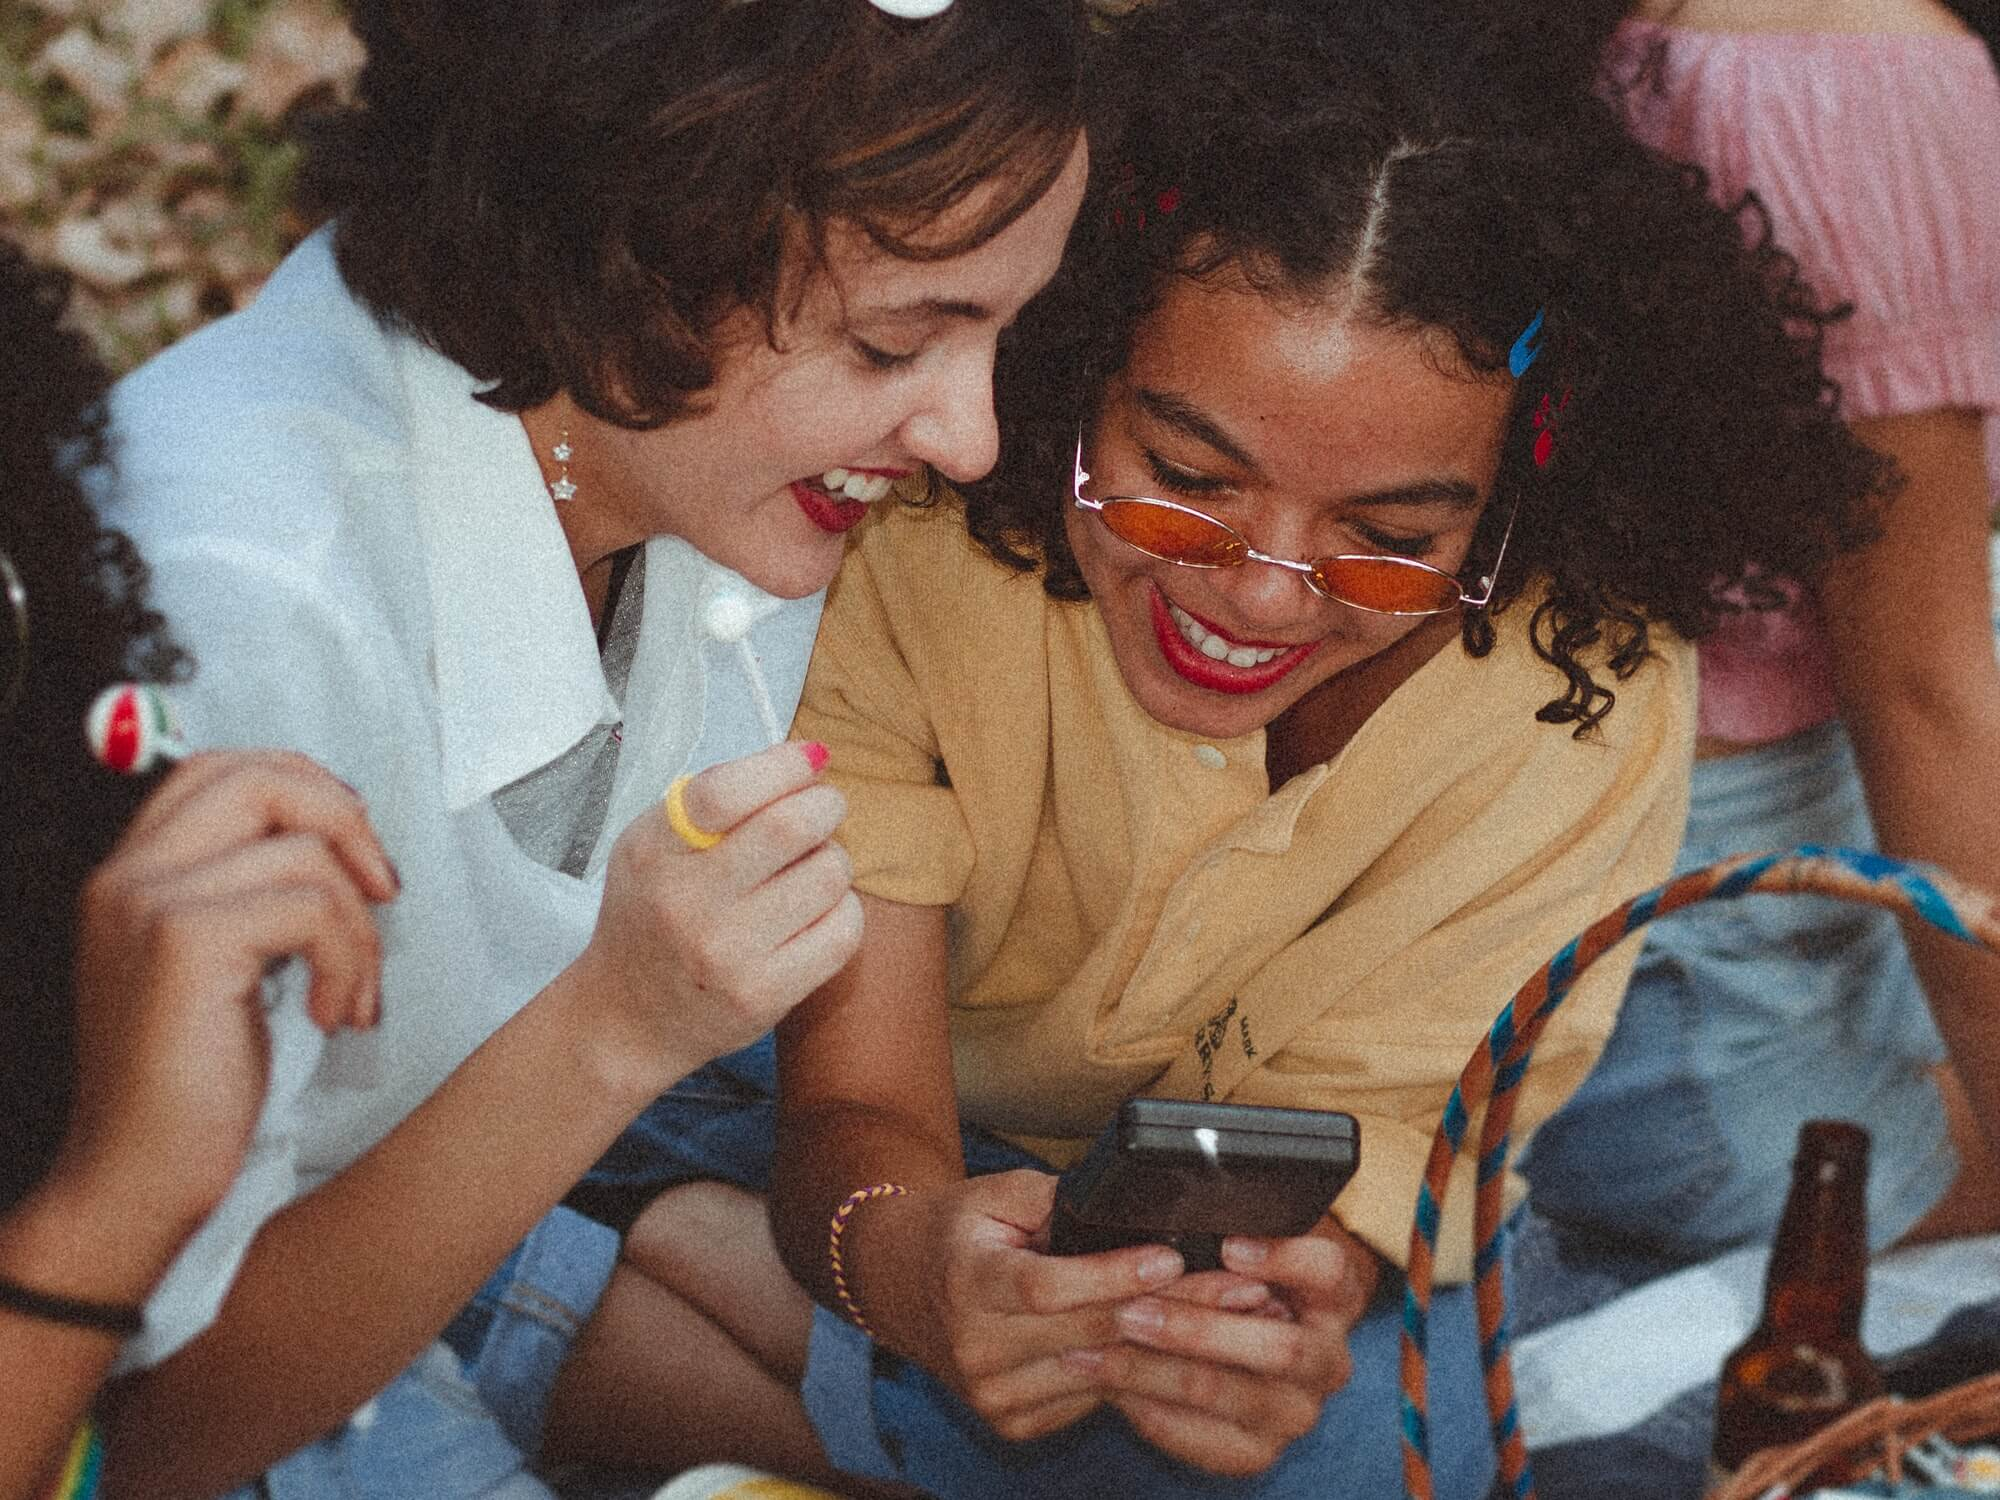 Group of friends at a picnic, two people are looking at a phone screen and smiling.